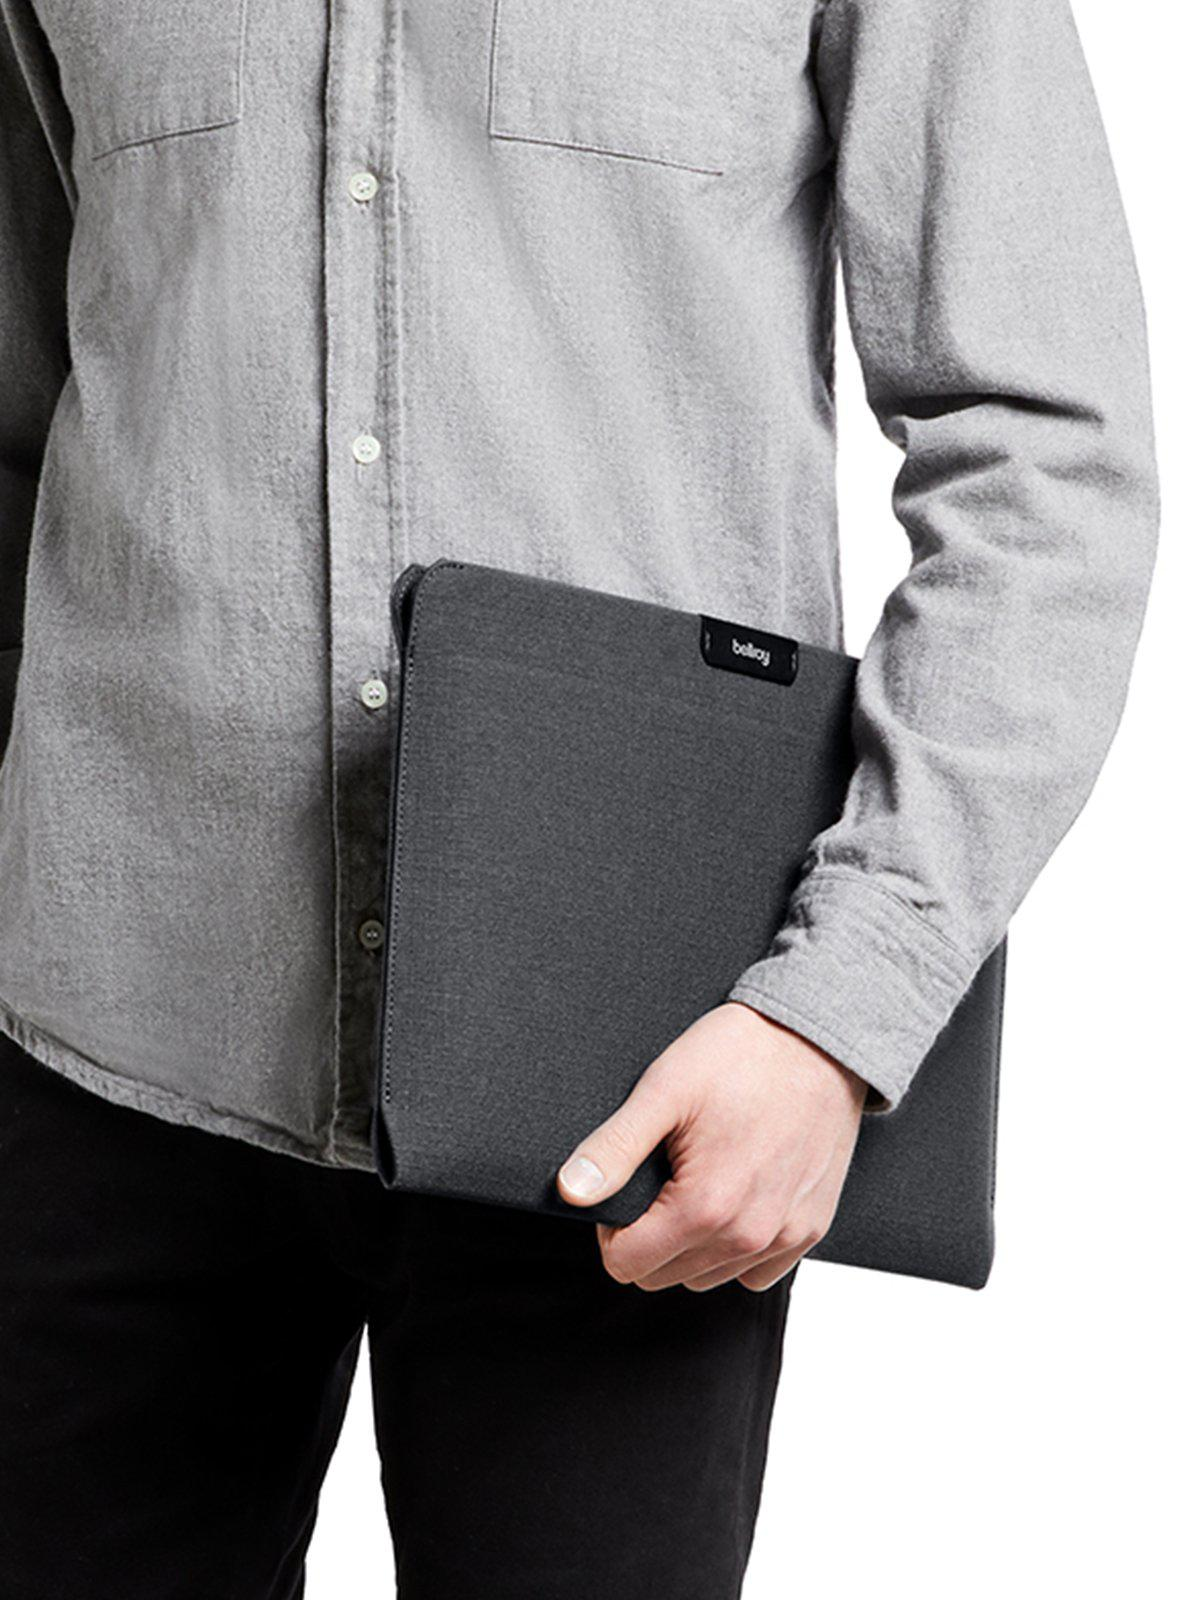 Bellroy Laptop Sleeve 13 Inch Black Recycled - MORE by Morello Indonesia